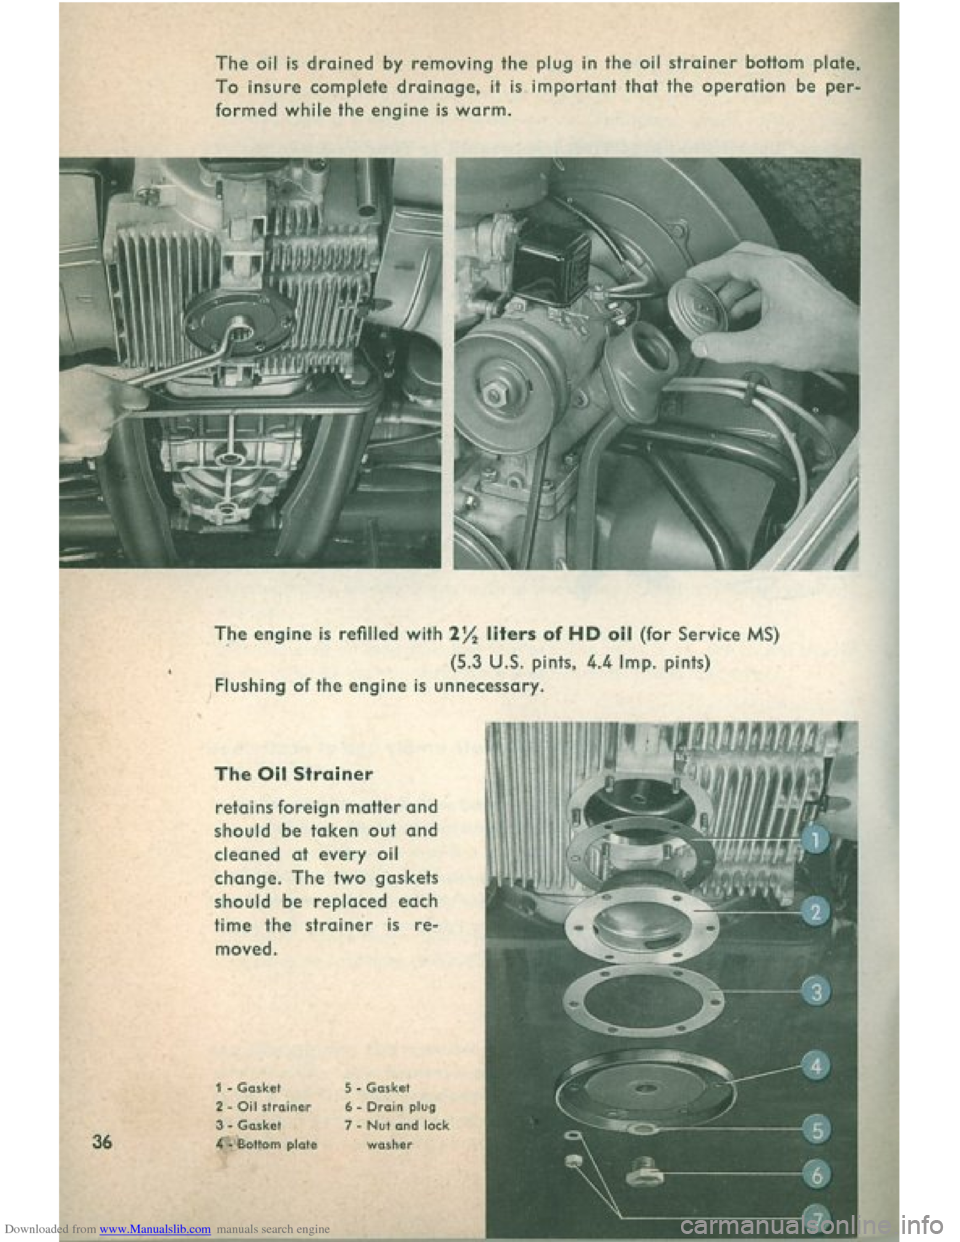 VOLKSWAGEN BEETLE 1960 1.G Owners Manual, Page 38